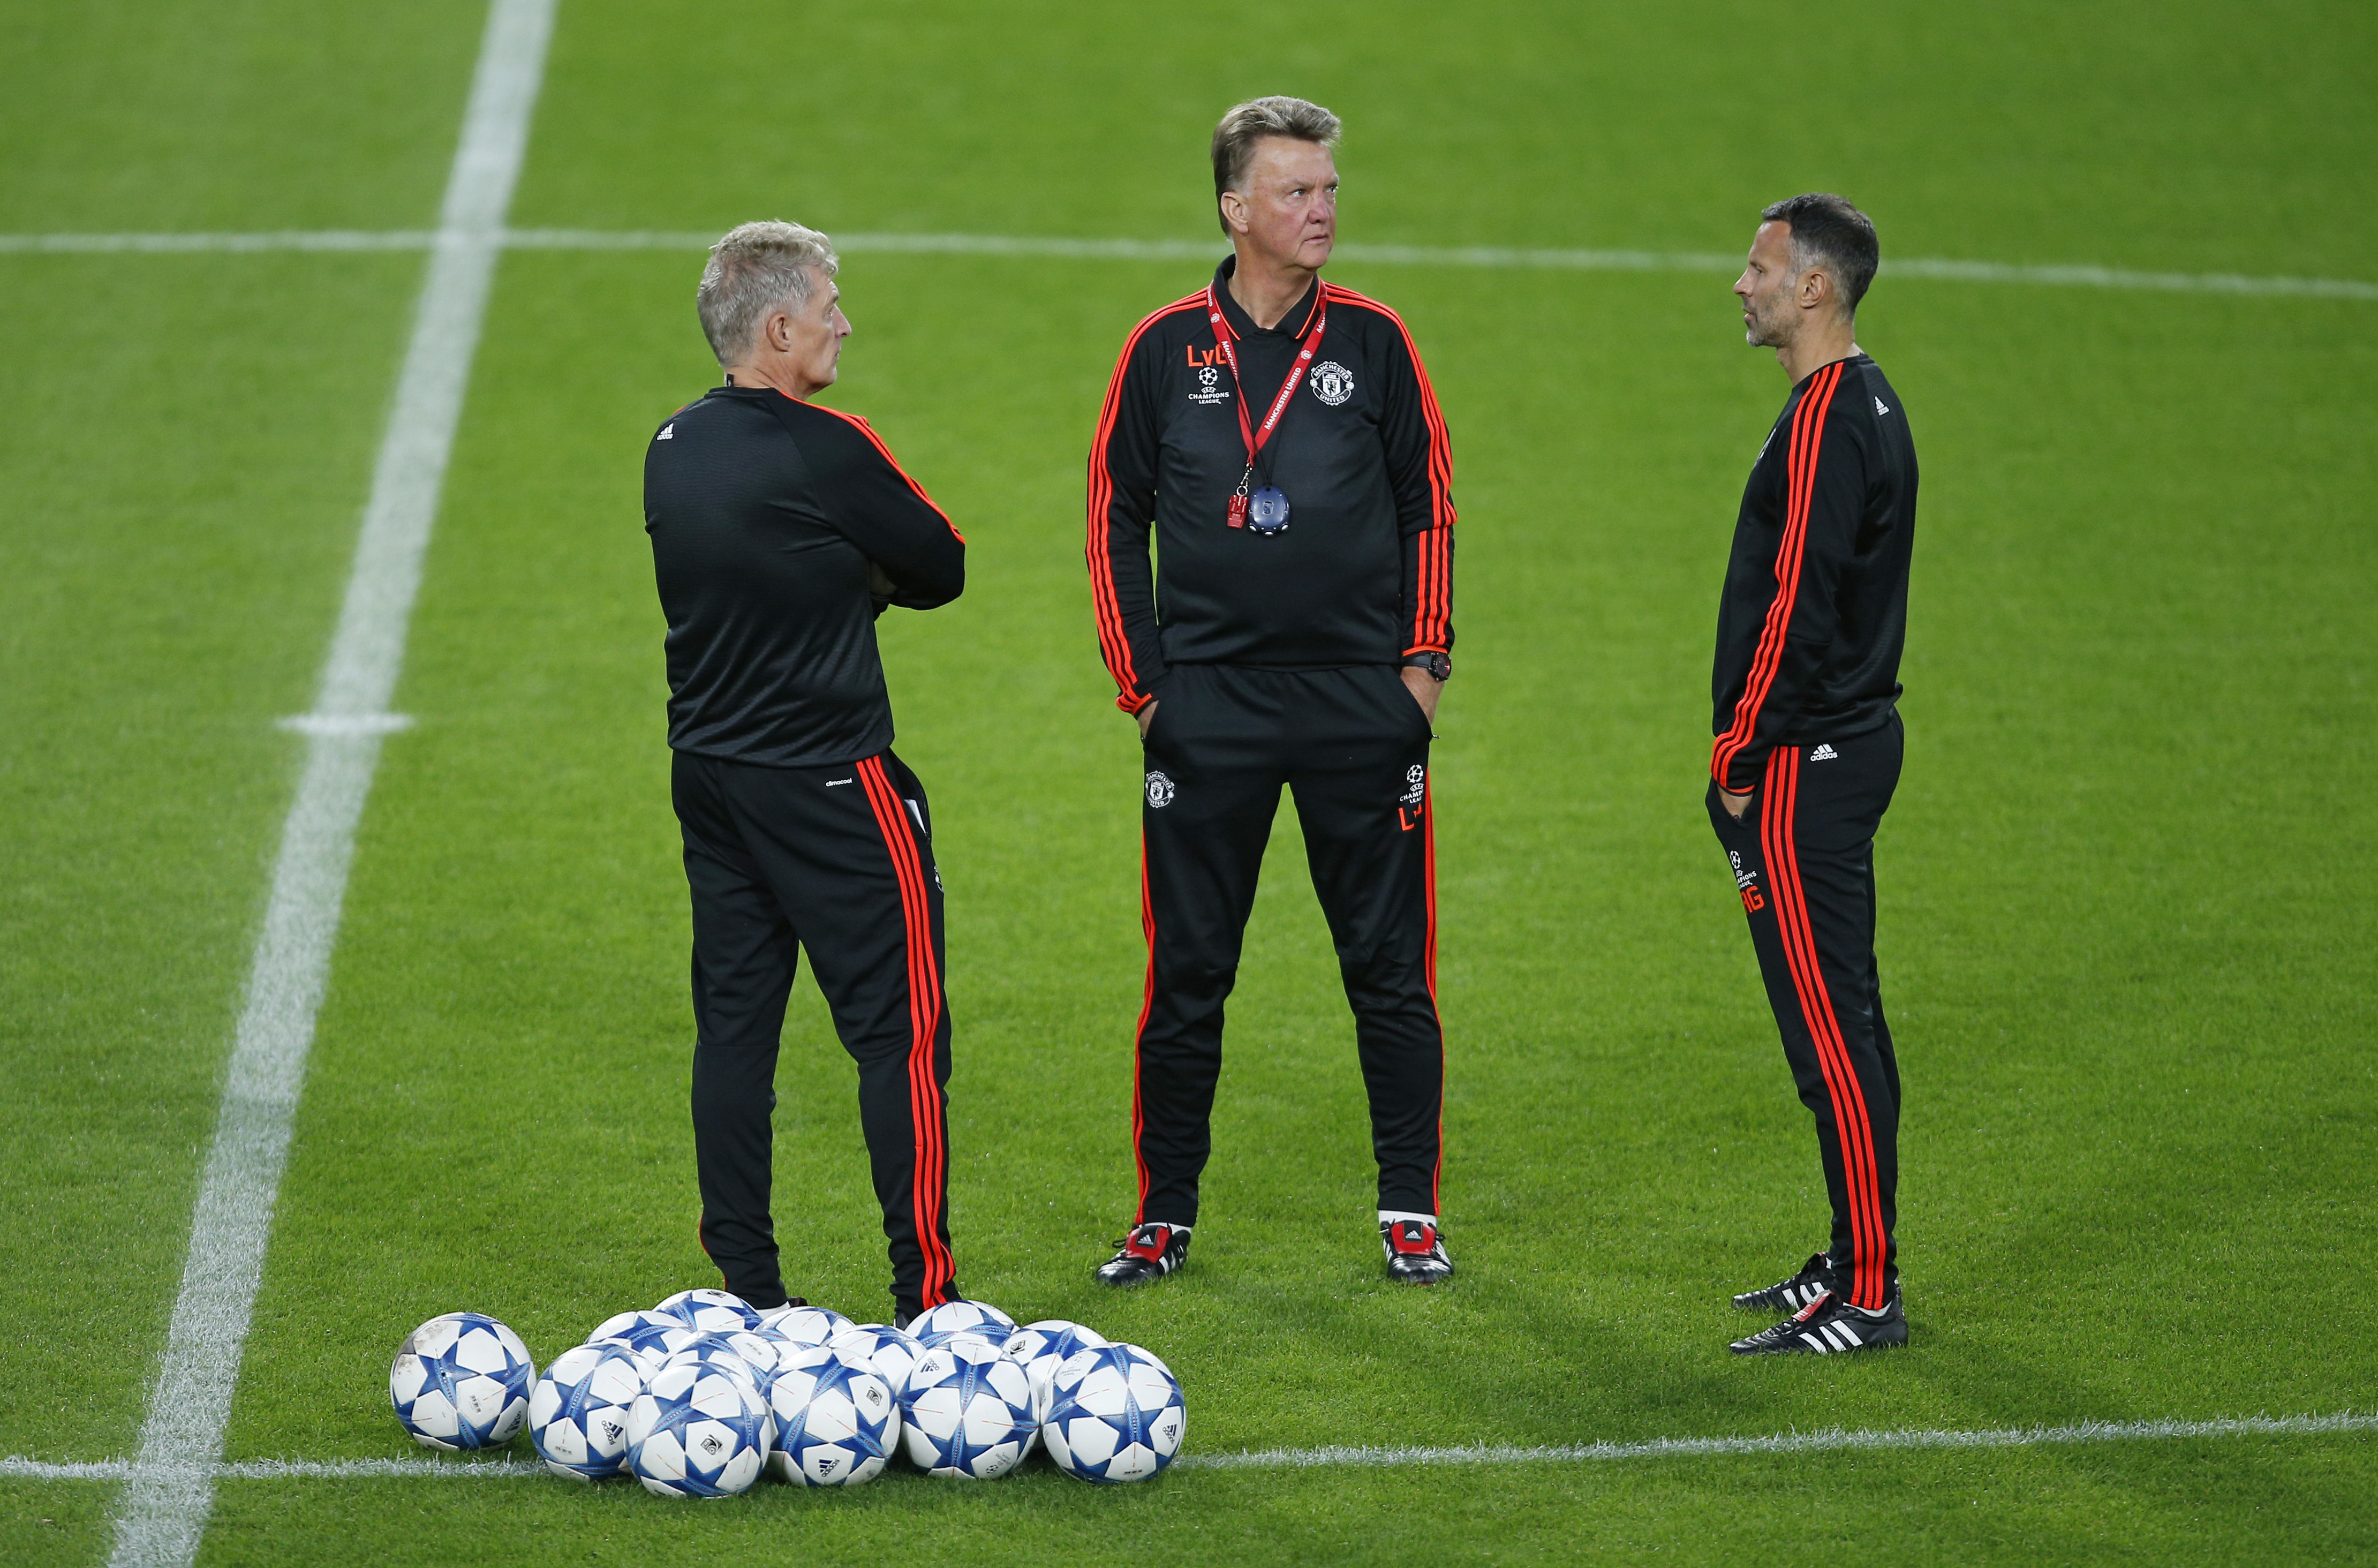 Football - Manchester United Training - Philips Stadion, Eindhoven, Netherlands - 14/9/15nManchester United coach Louis van Gaal and assistant manager Ryan Giggs during trainingnAction Images via Reuters / Andrew CouldridgenLivepicnEDITORIAL USE ONLY.